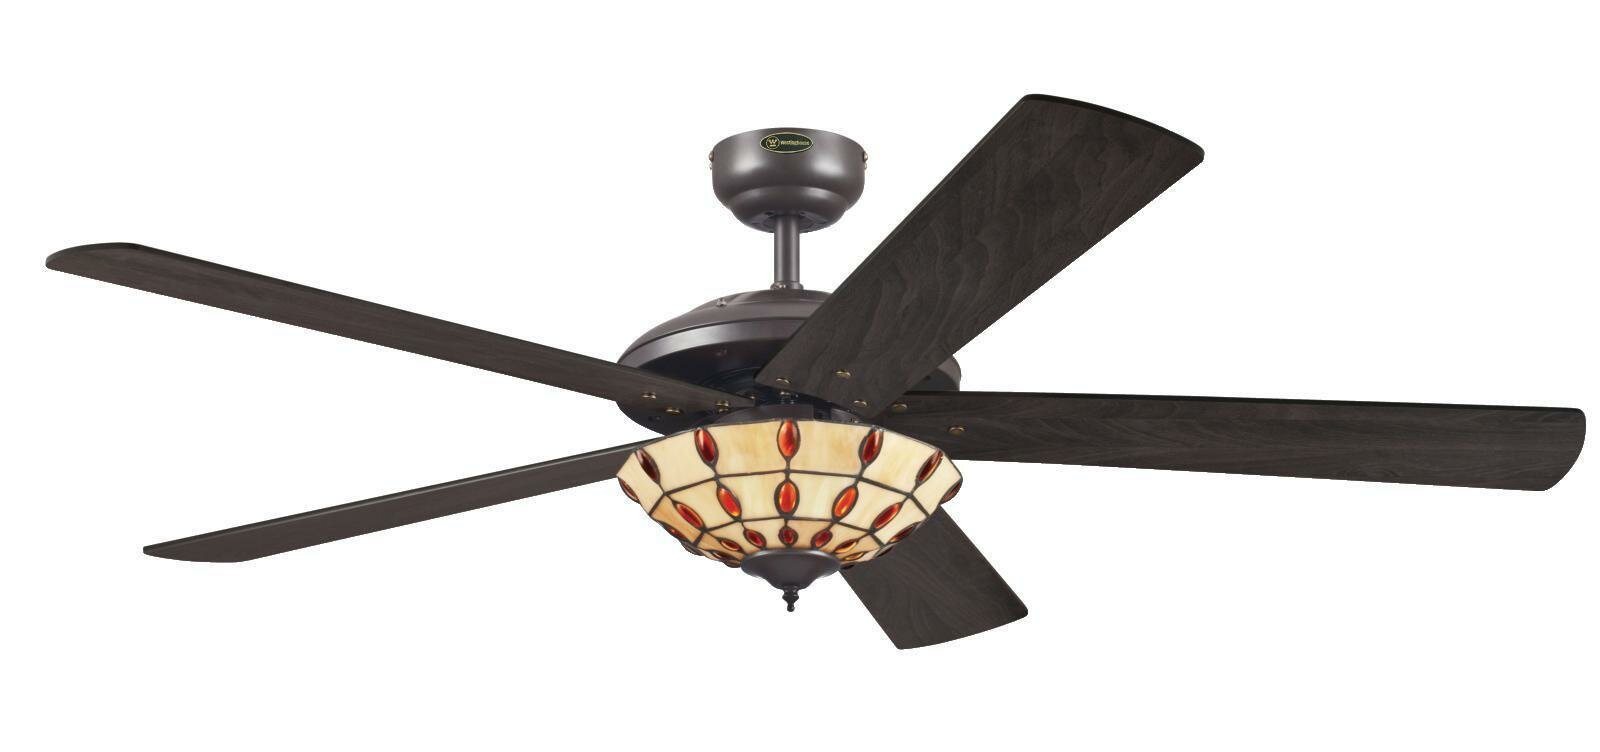 Westinghouse  et Tiffany 3 Ceiling Fan 72485 Wts1049 as well Electrical together with Wiring Diagram Dayton Ac Electric Motor additionally Electric Ke Wiring Diagram also Cutler Hammer Starter Wiring Diagram. on westinghouse electric reversible motors wiring diagram